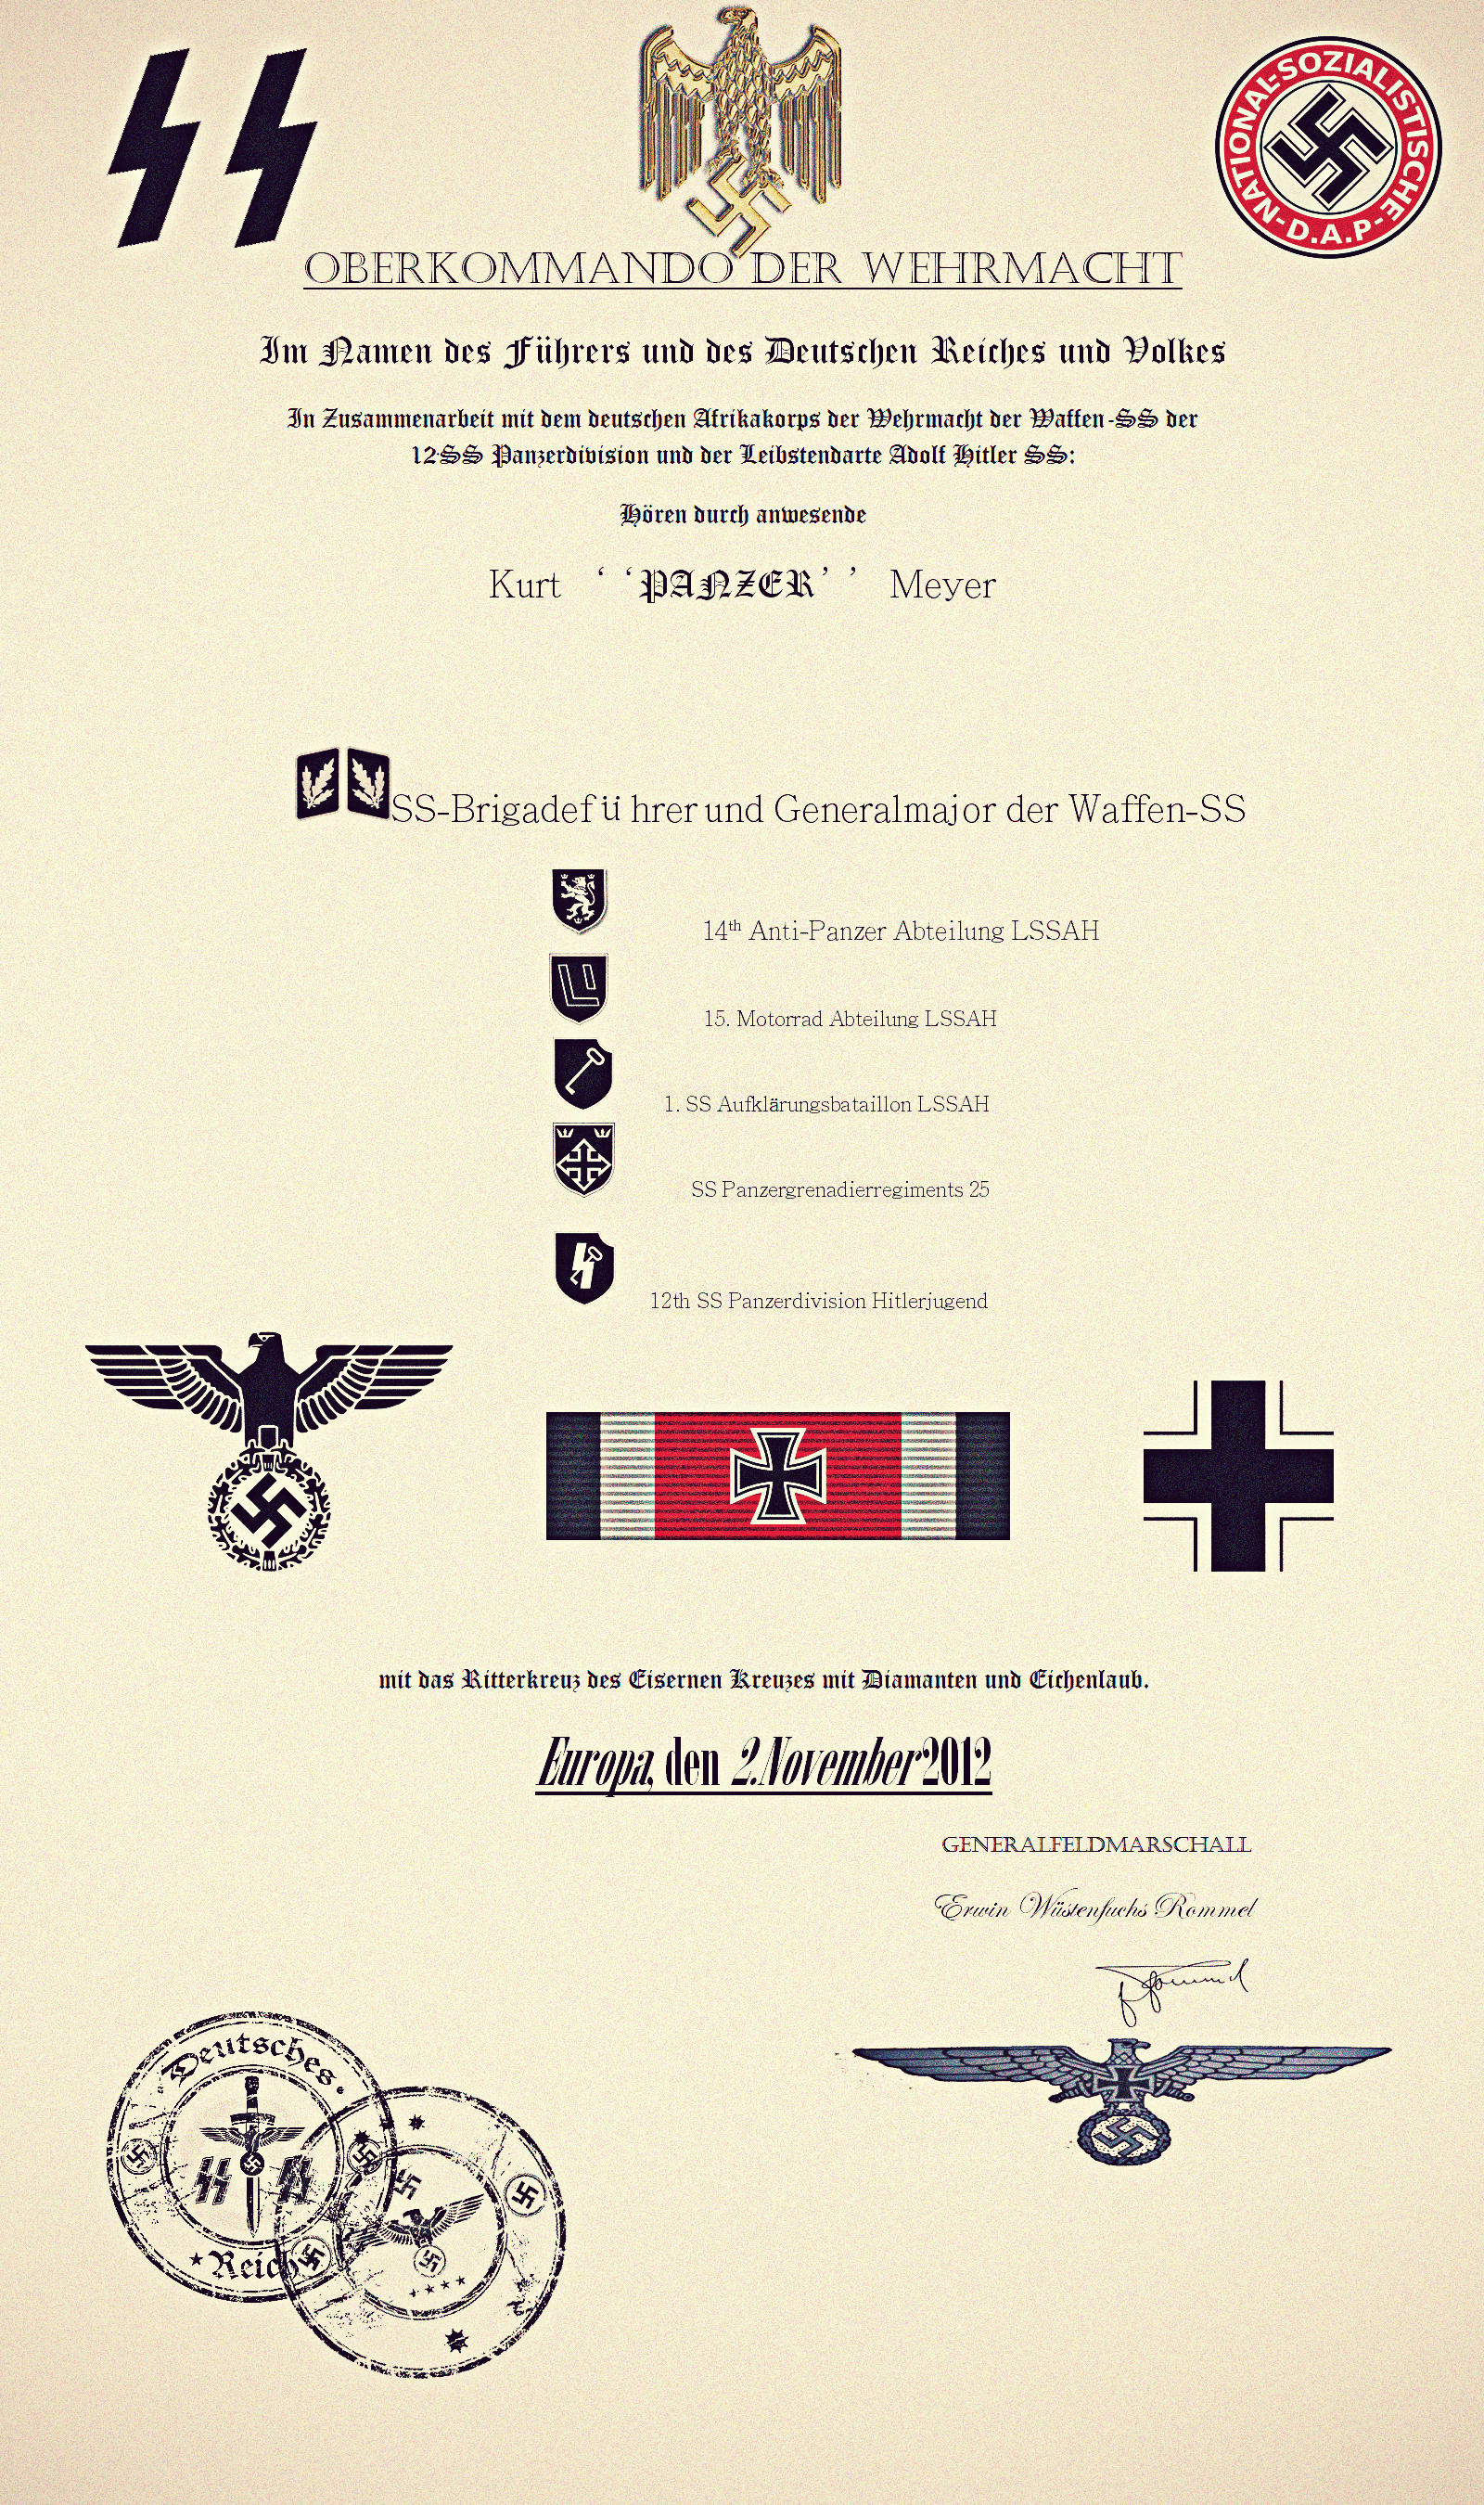 Community Policing Essays Hospital Compliance Officer Cover Letter German Wehrmacht Ss Iron Cross Paper By Dak Rommel Dknv Community Policing Essays